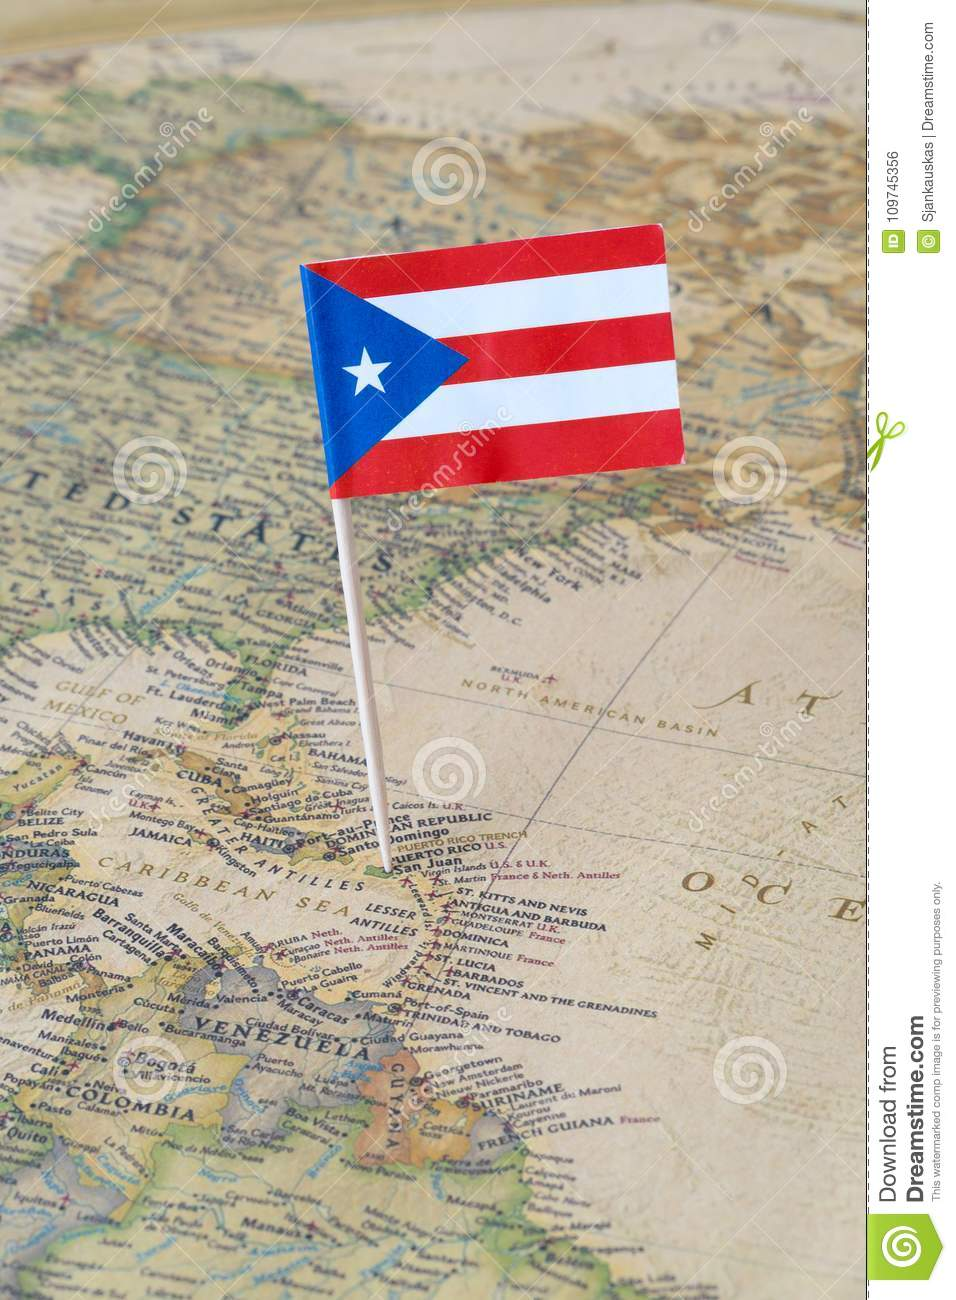 Puerto Rico flag pin on a world map